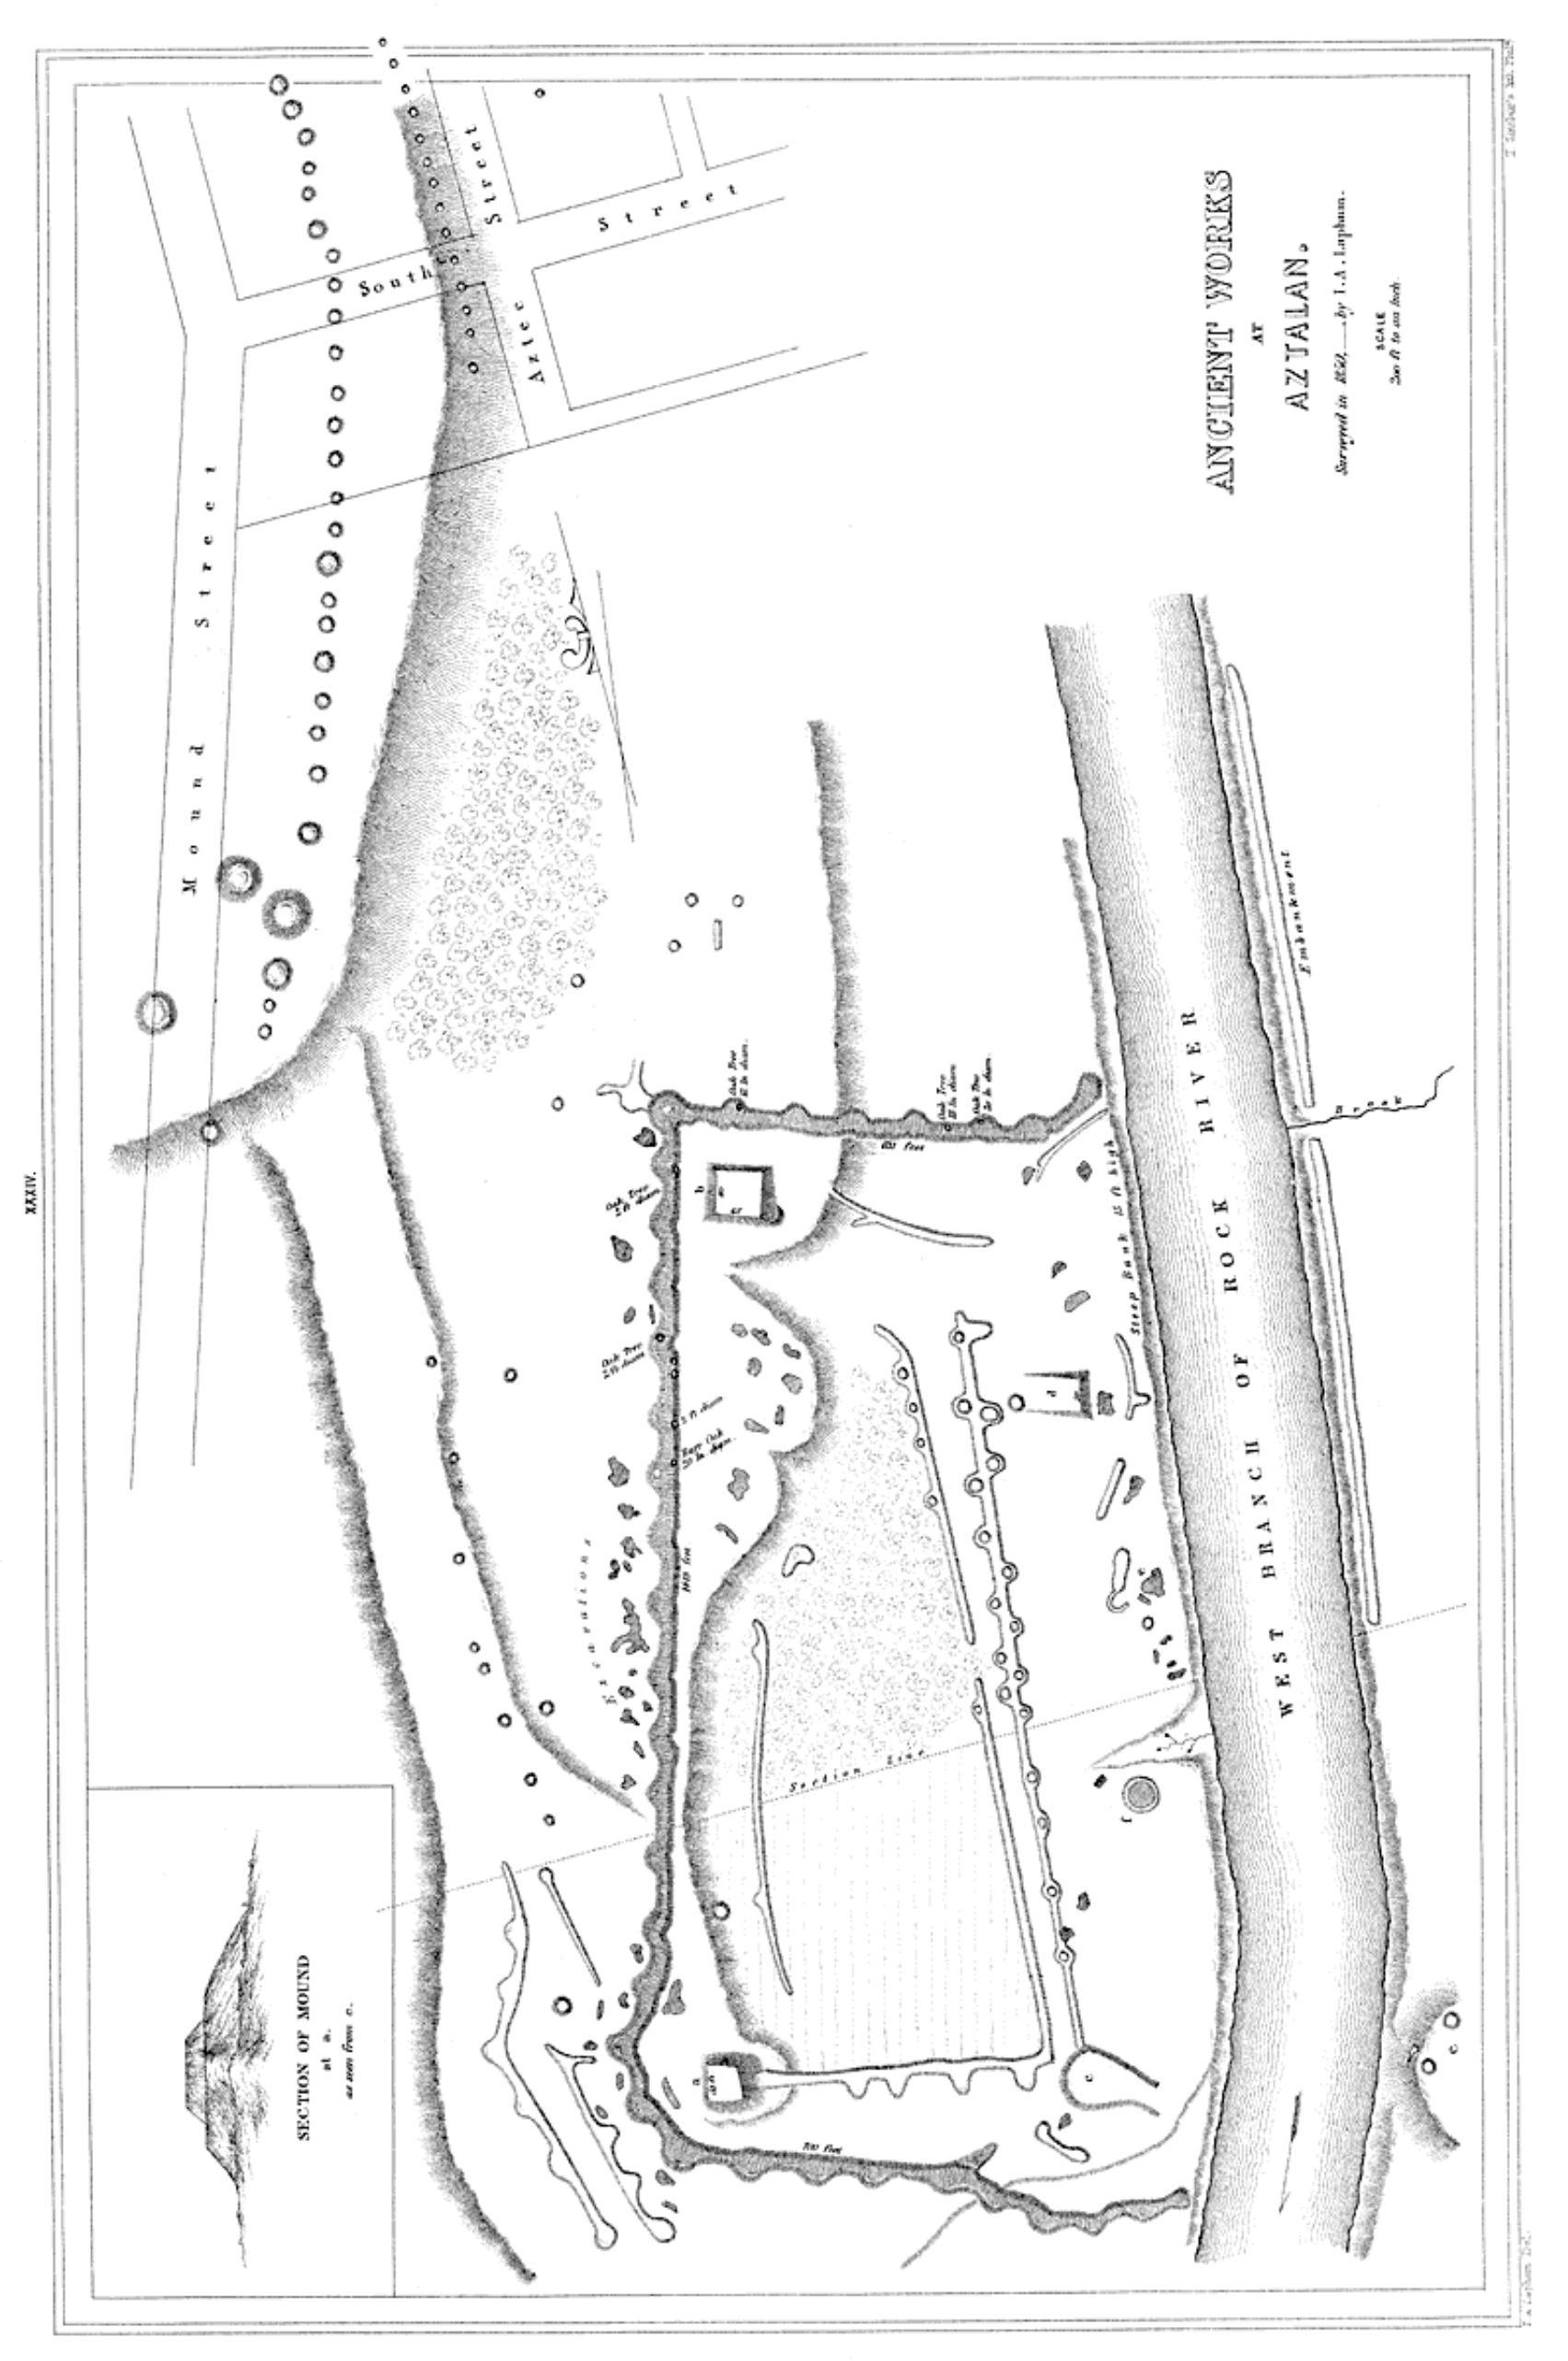 Figure 5. 1850 Increase Lapham map of the Aztalan site.